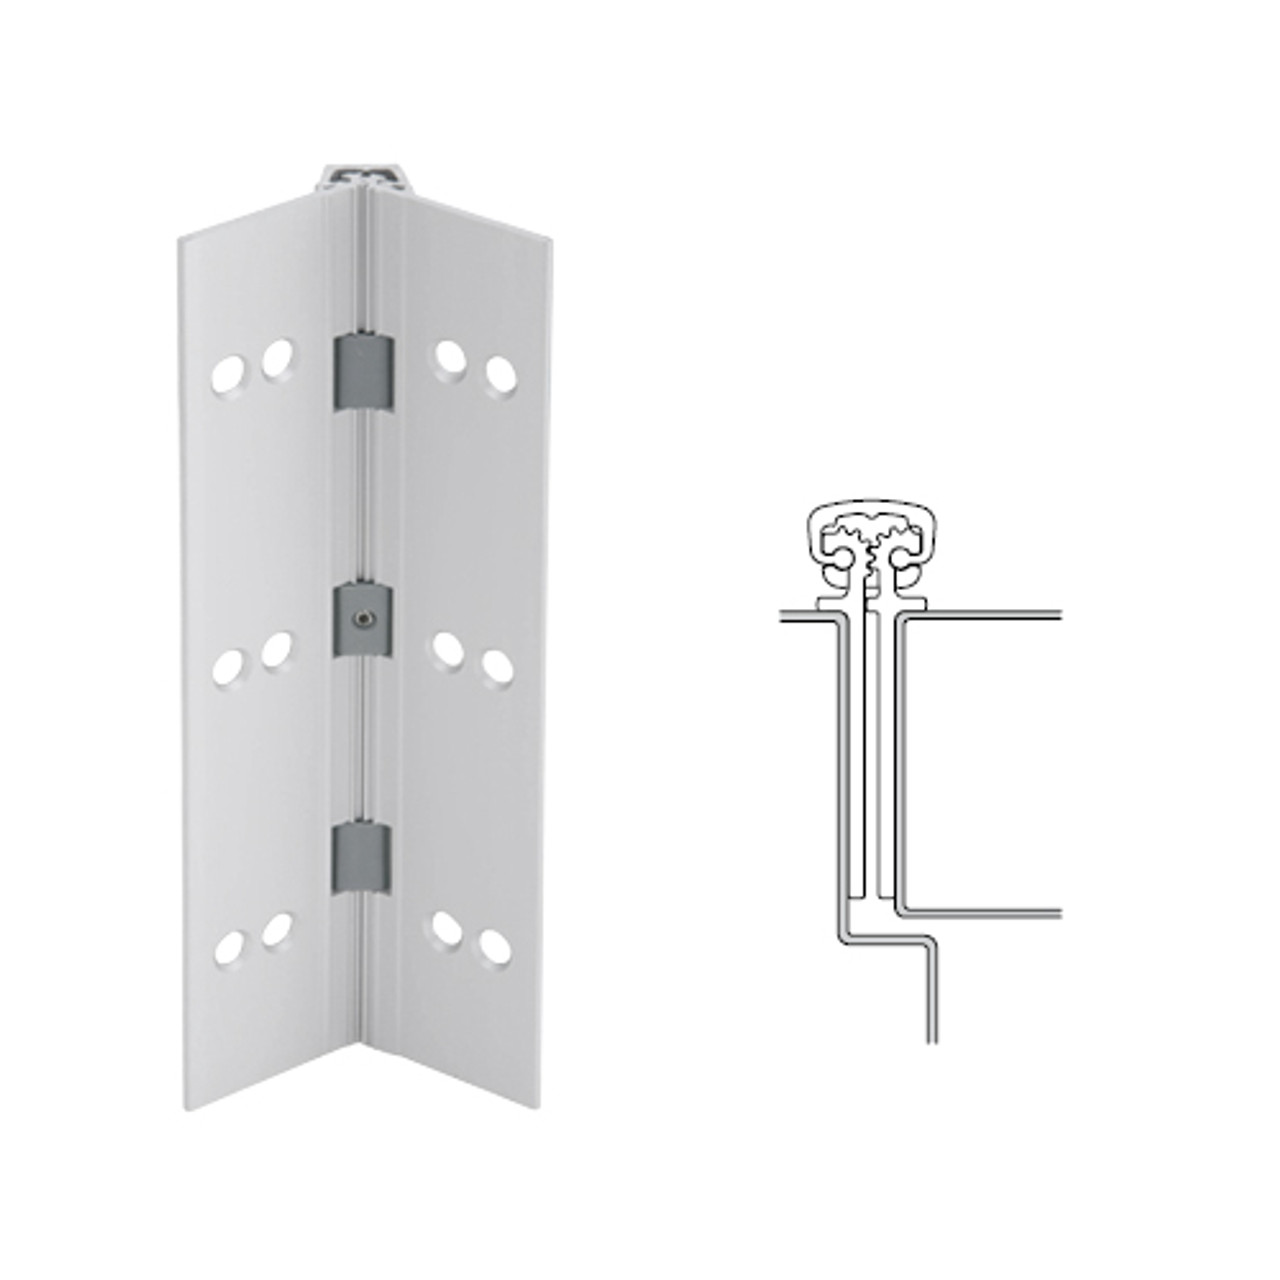 027XY-US28-83-HT IVES Full Mortise Continuous Geared Hinges with Hospital Tip in Satin Aluminum